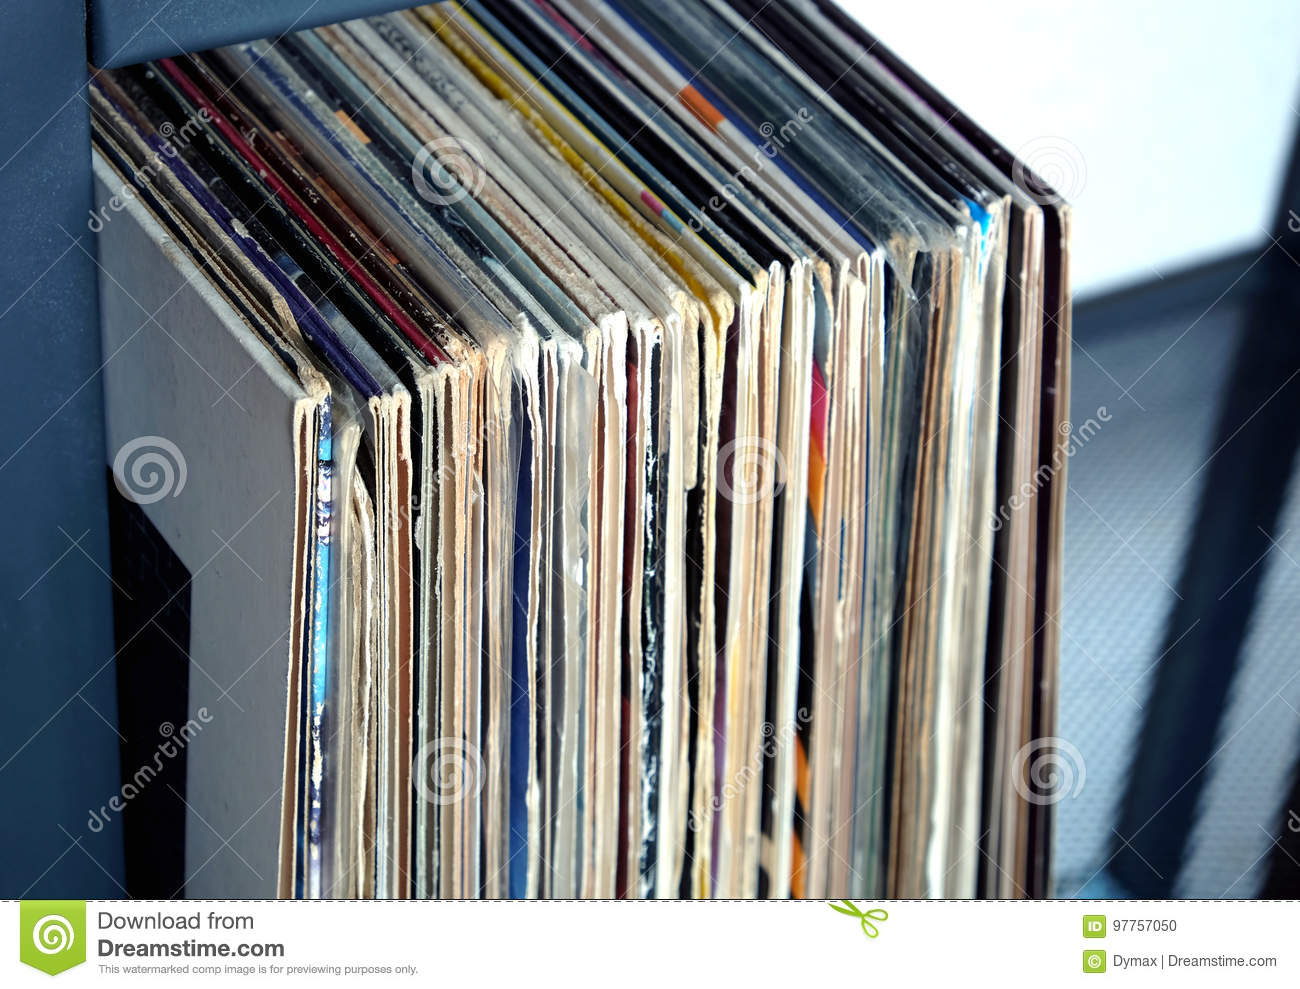 Stack of many vinyl records in old color covers on a shelf side view